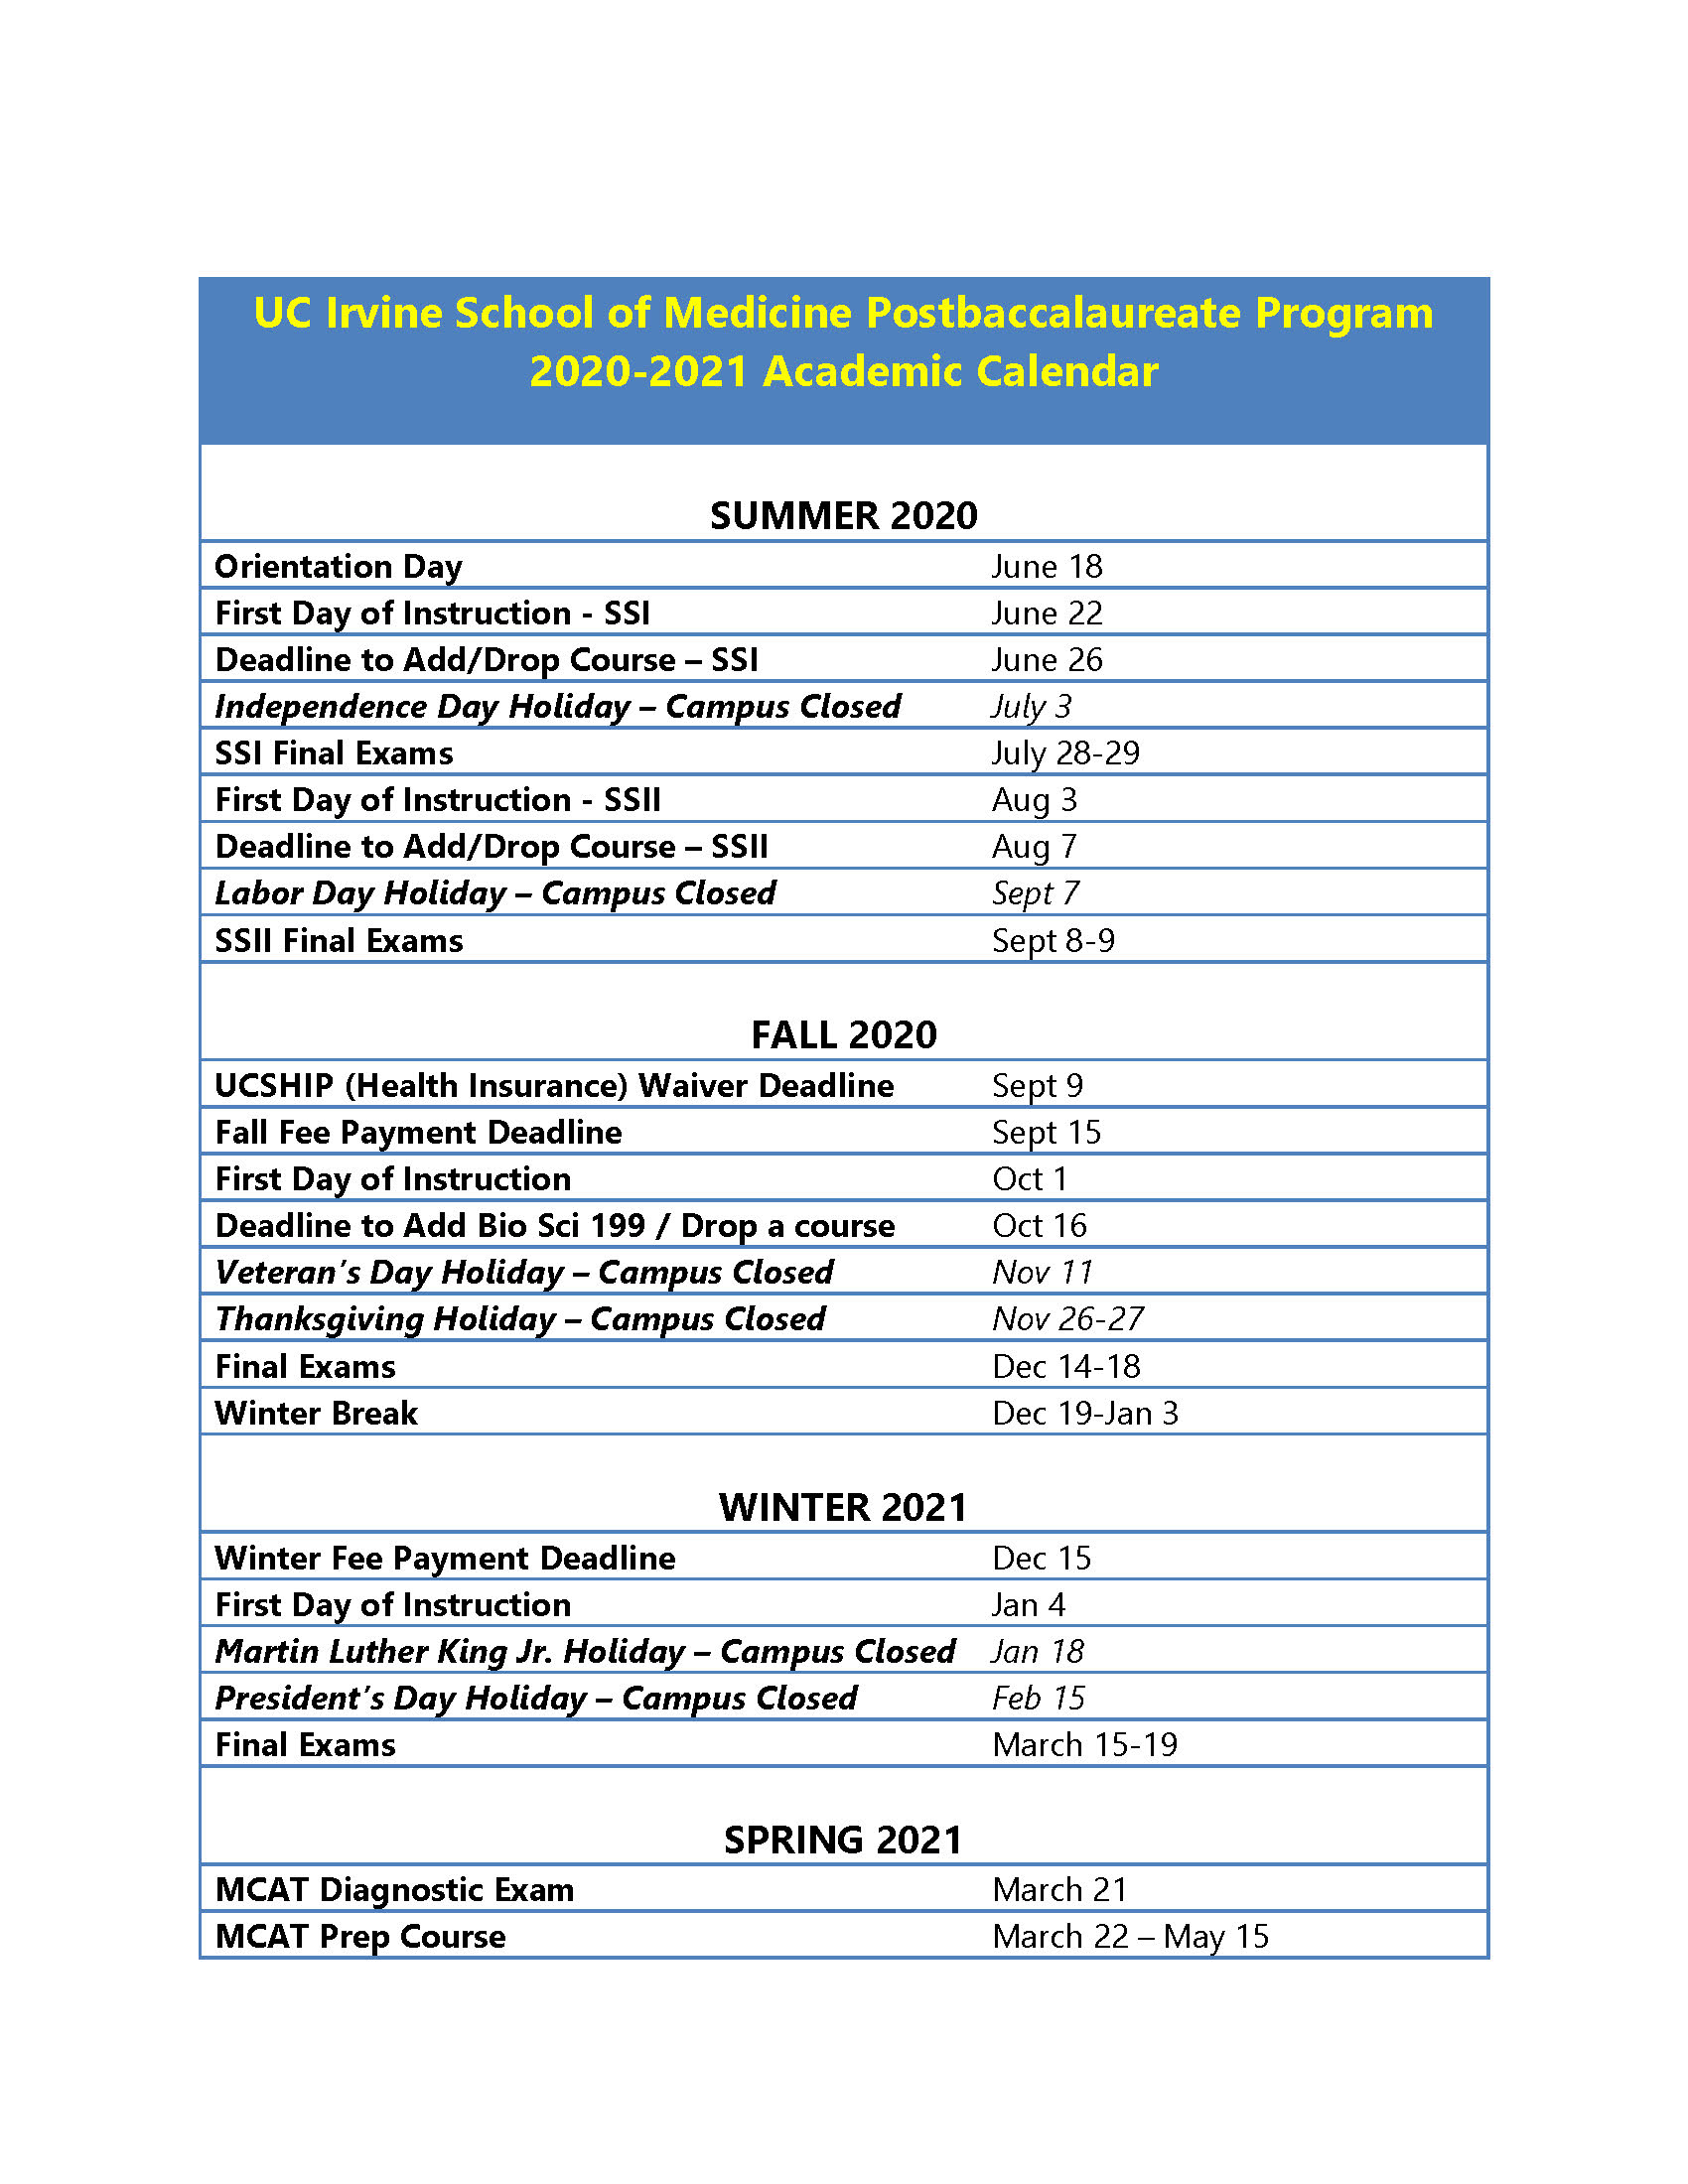 Postbaccalaureate Program | Medical Education | School Of Pertaining To Concordia University Irvine Holiday Schedule 2021